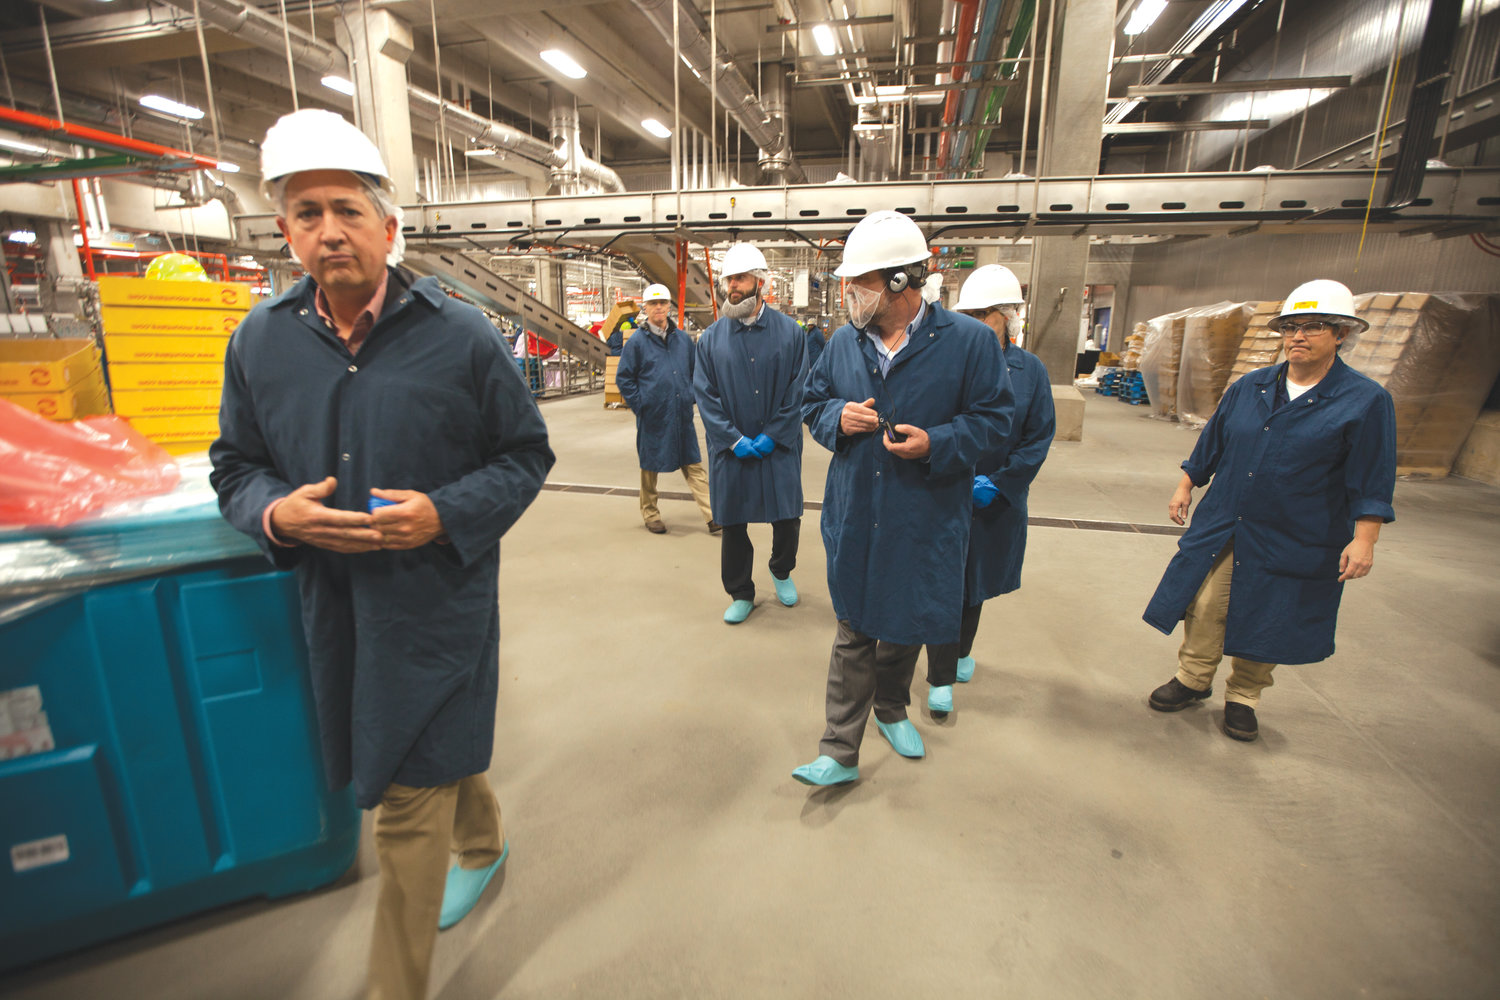 After getting a hard hat and other protective gear, visitors on the plant tour saw the start of the process of creating the packages of chicken seen in stores.